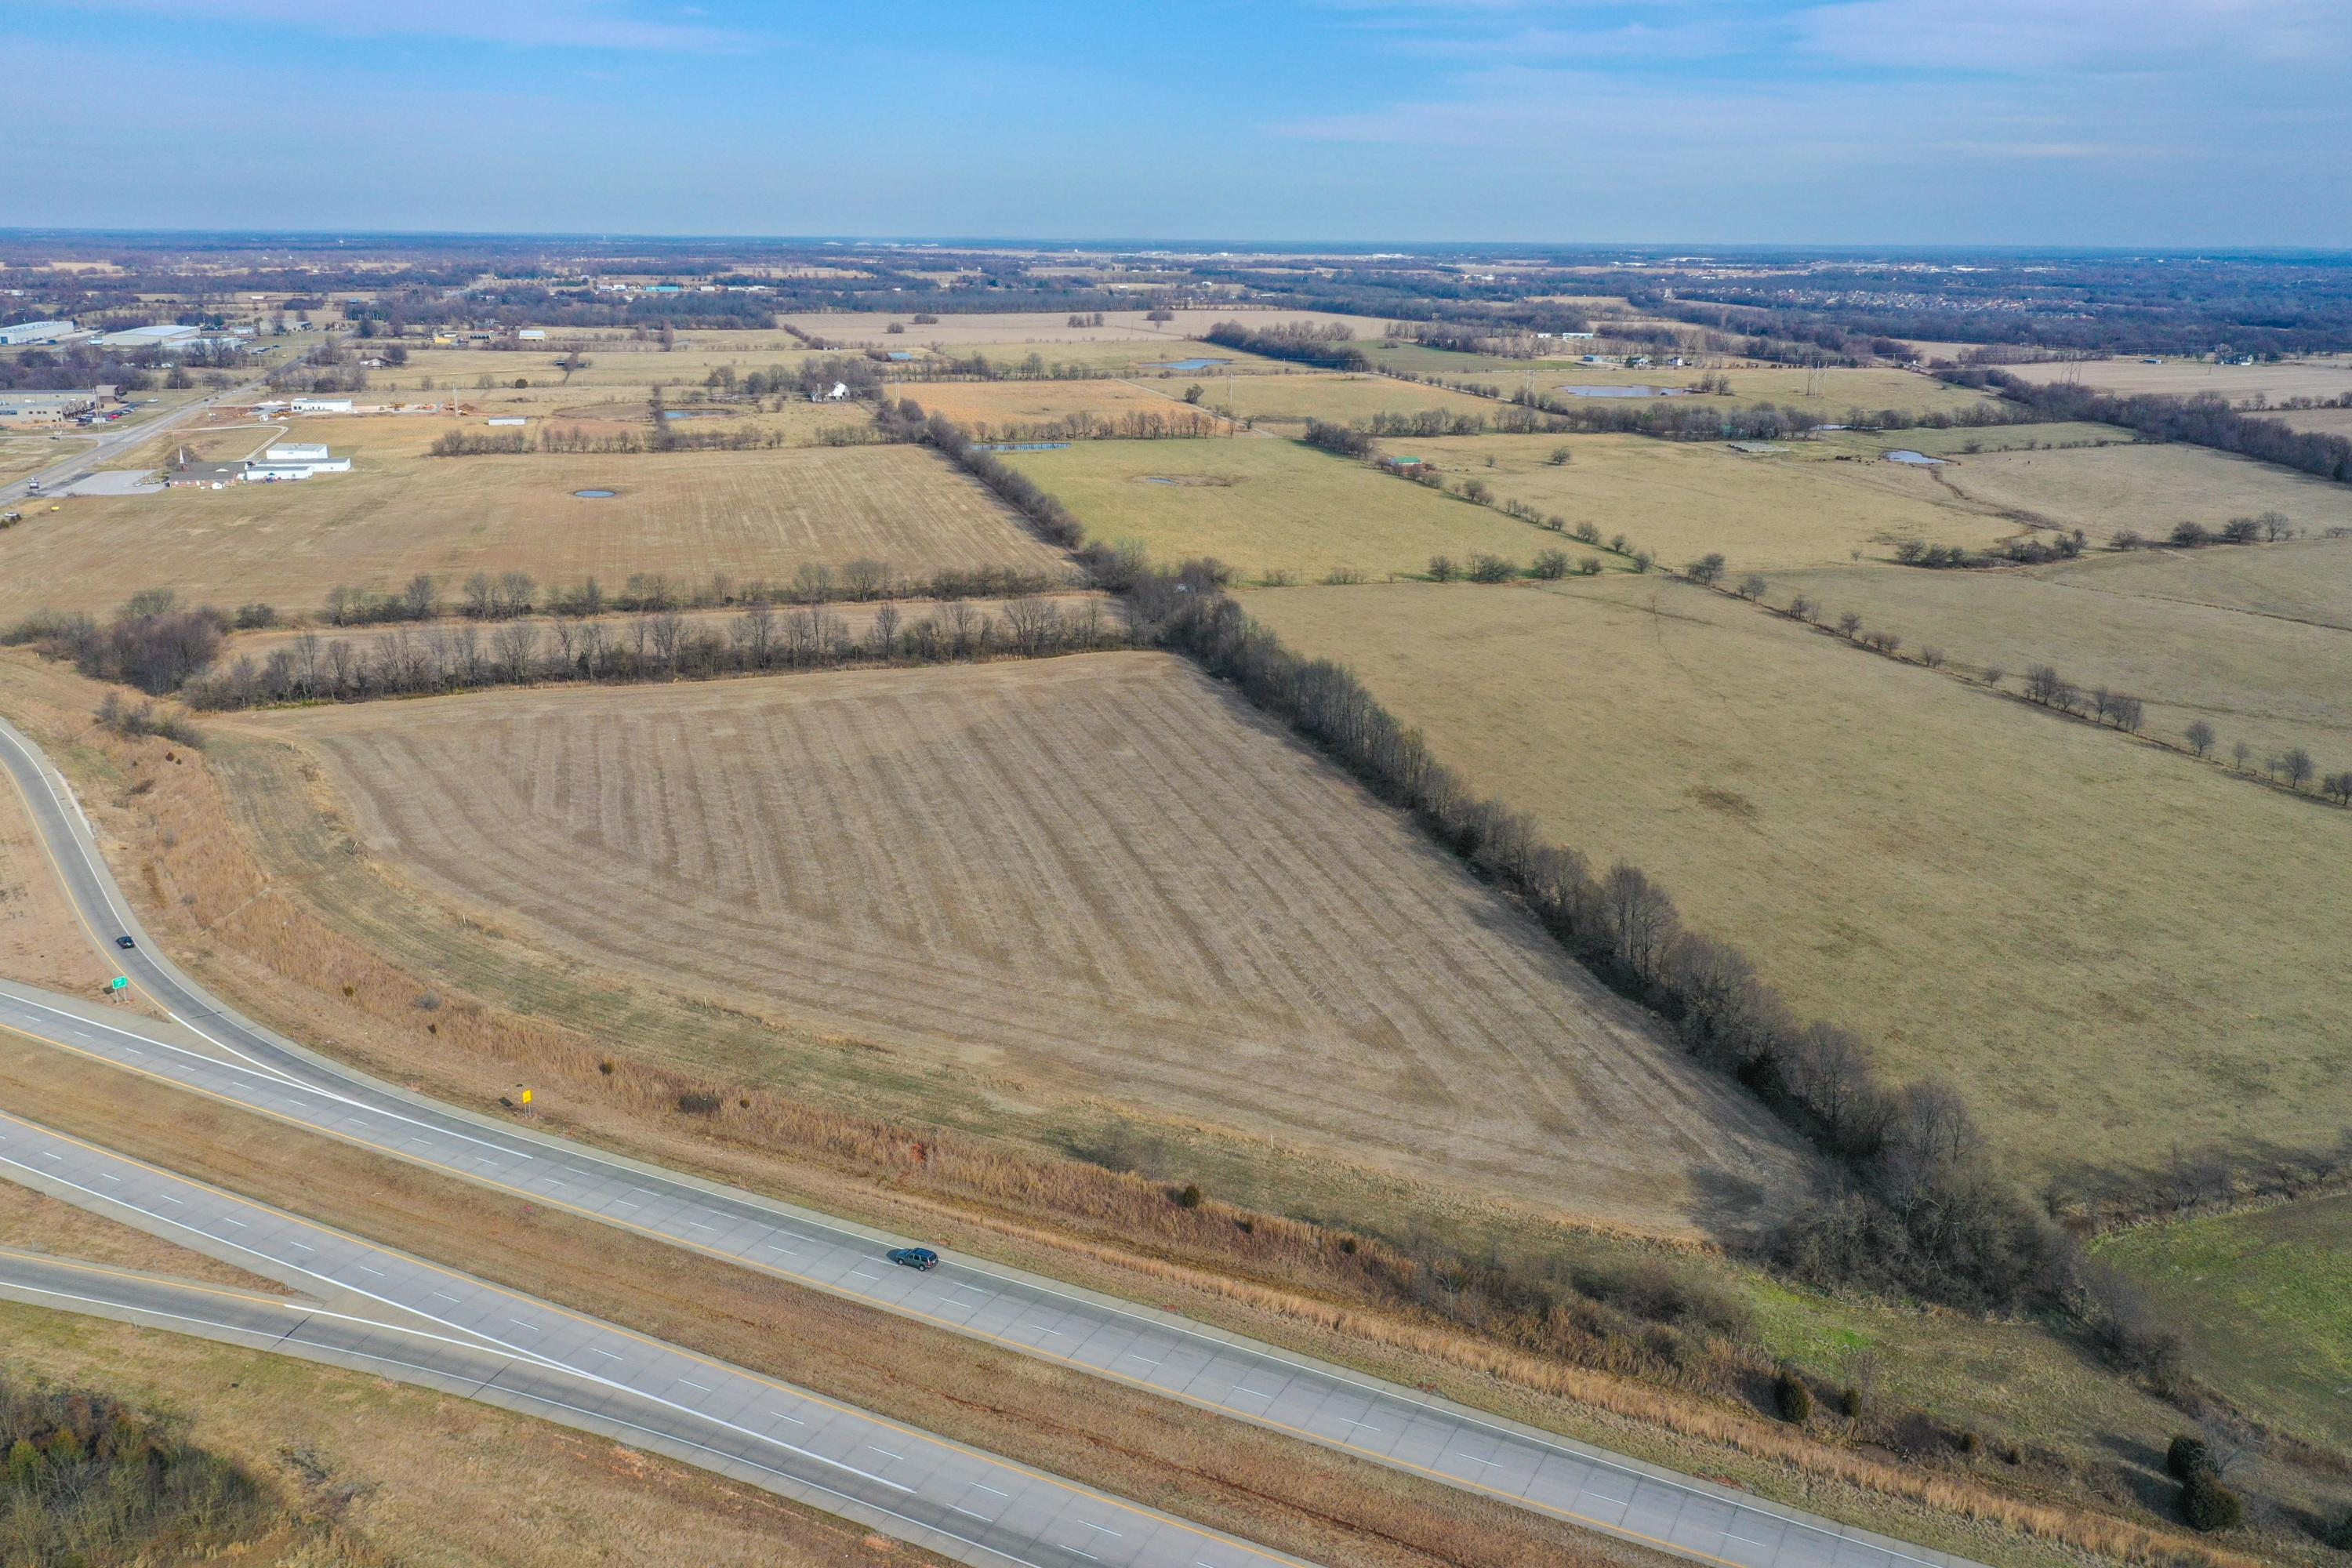 000 South State Highway Mm Republic, MO 65738